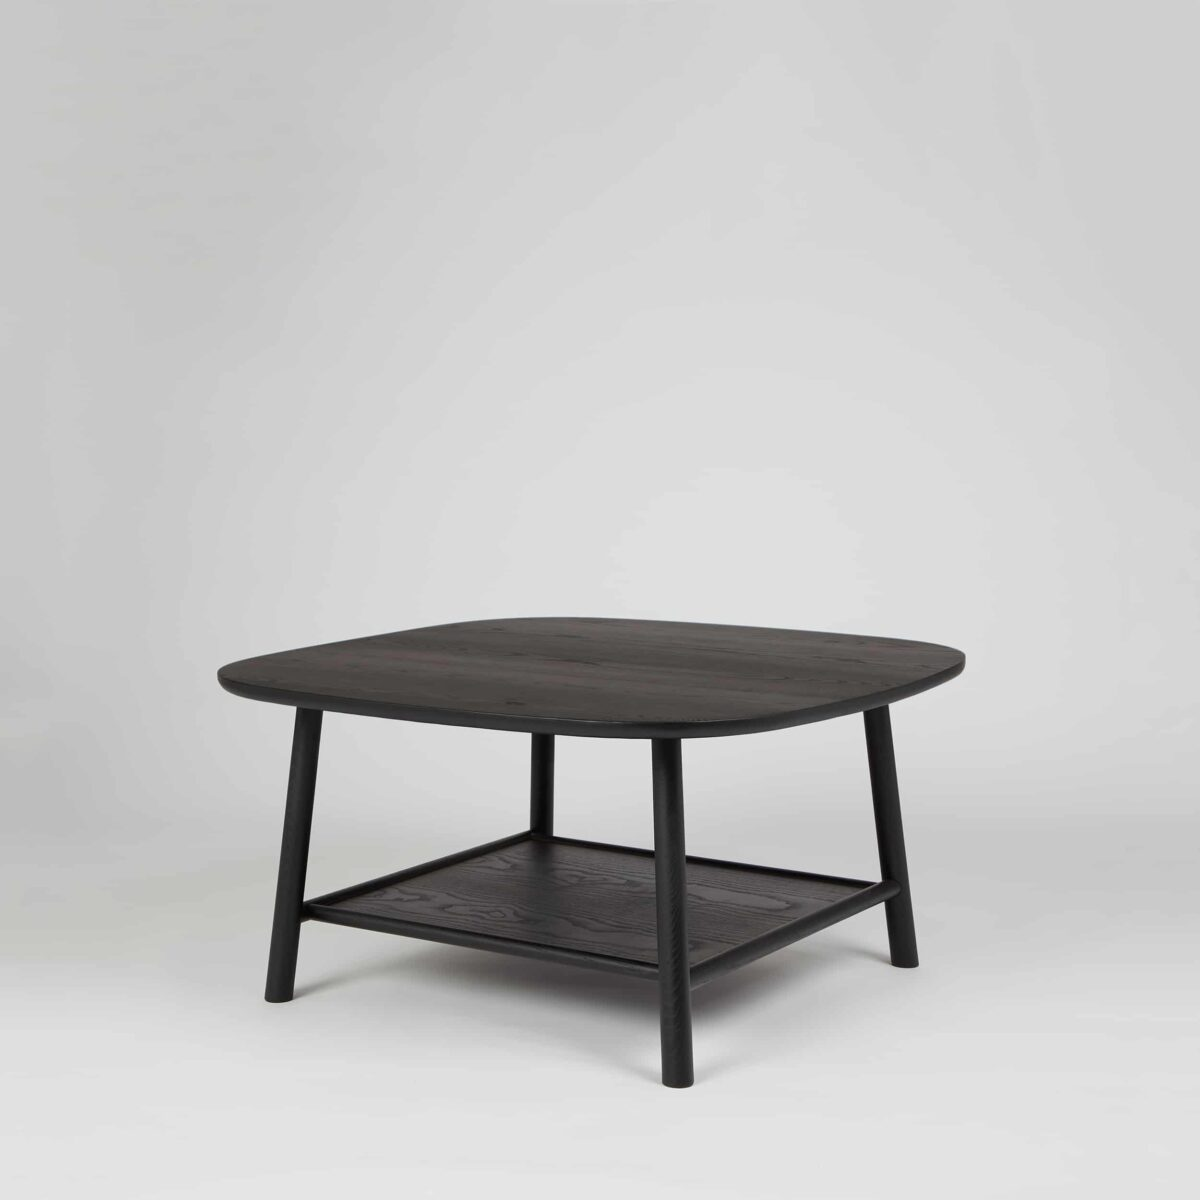 Hardy Coffee Table Black-181210-Another Country-webready-1106